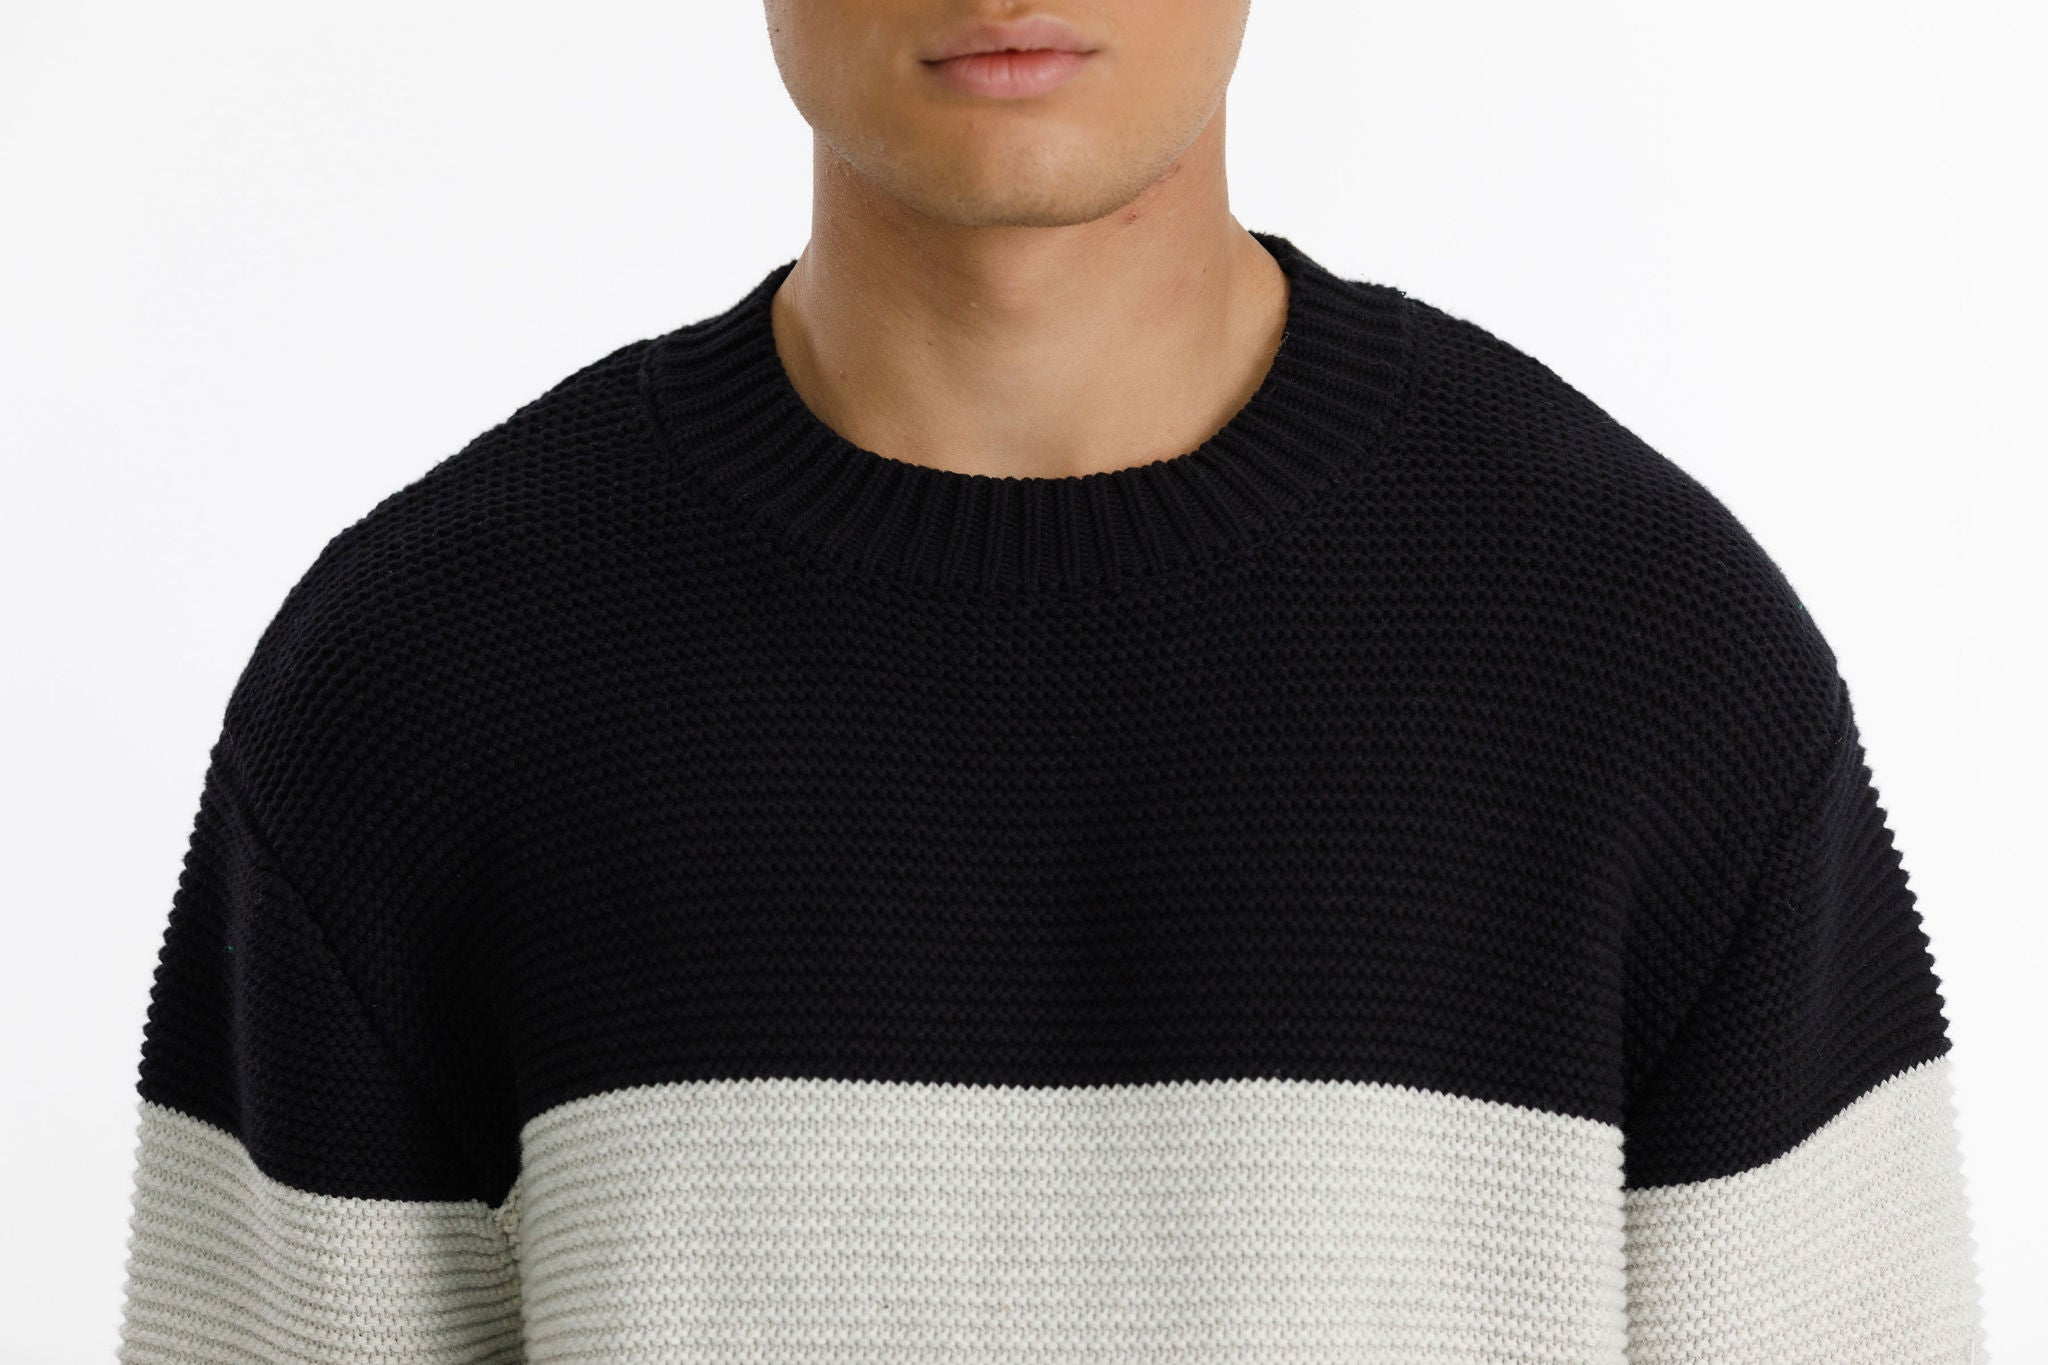 ATTIC SWEATER - Black White